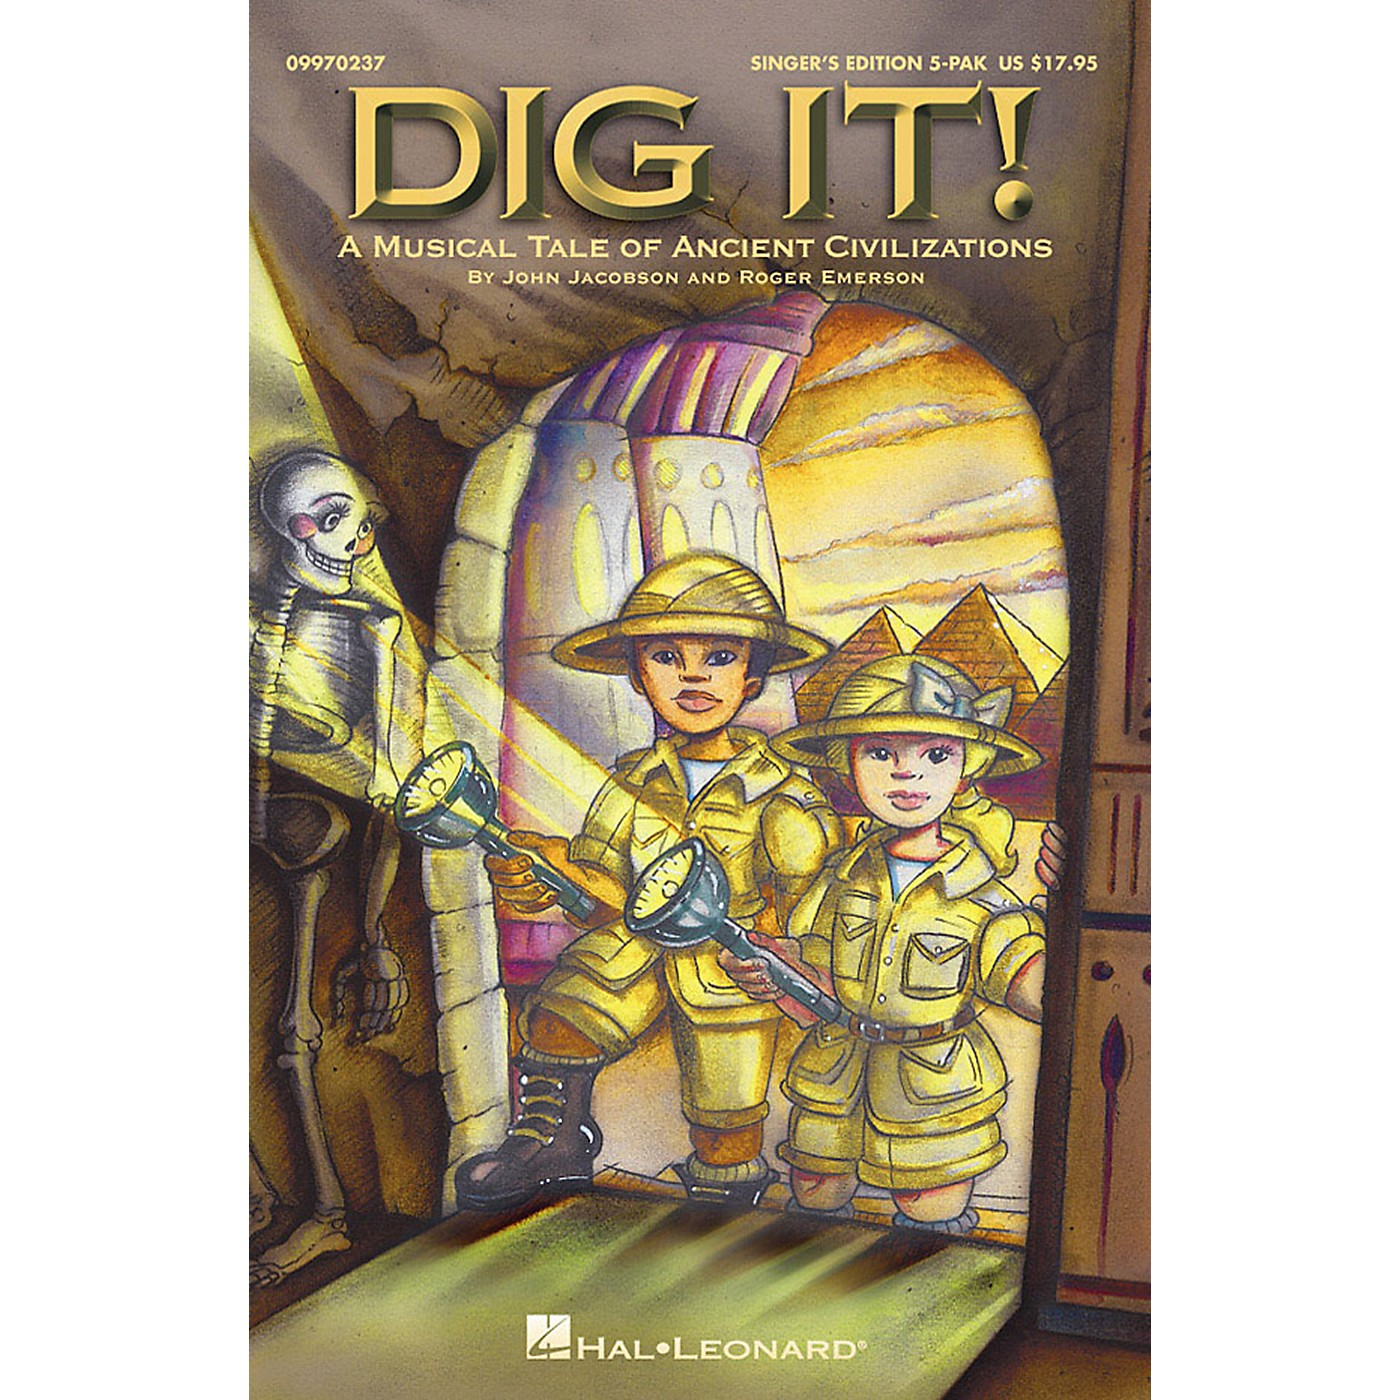 Hal Leonard Dig It!  A Musical Tale of Ancient Civilizations (Musical) Singer's Edition 5-Pak thumbnail